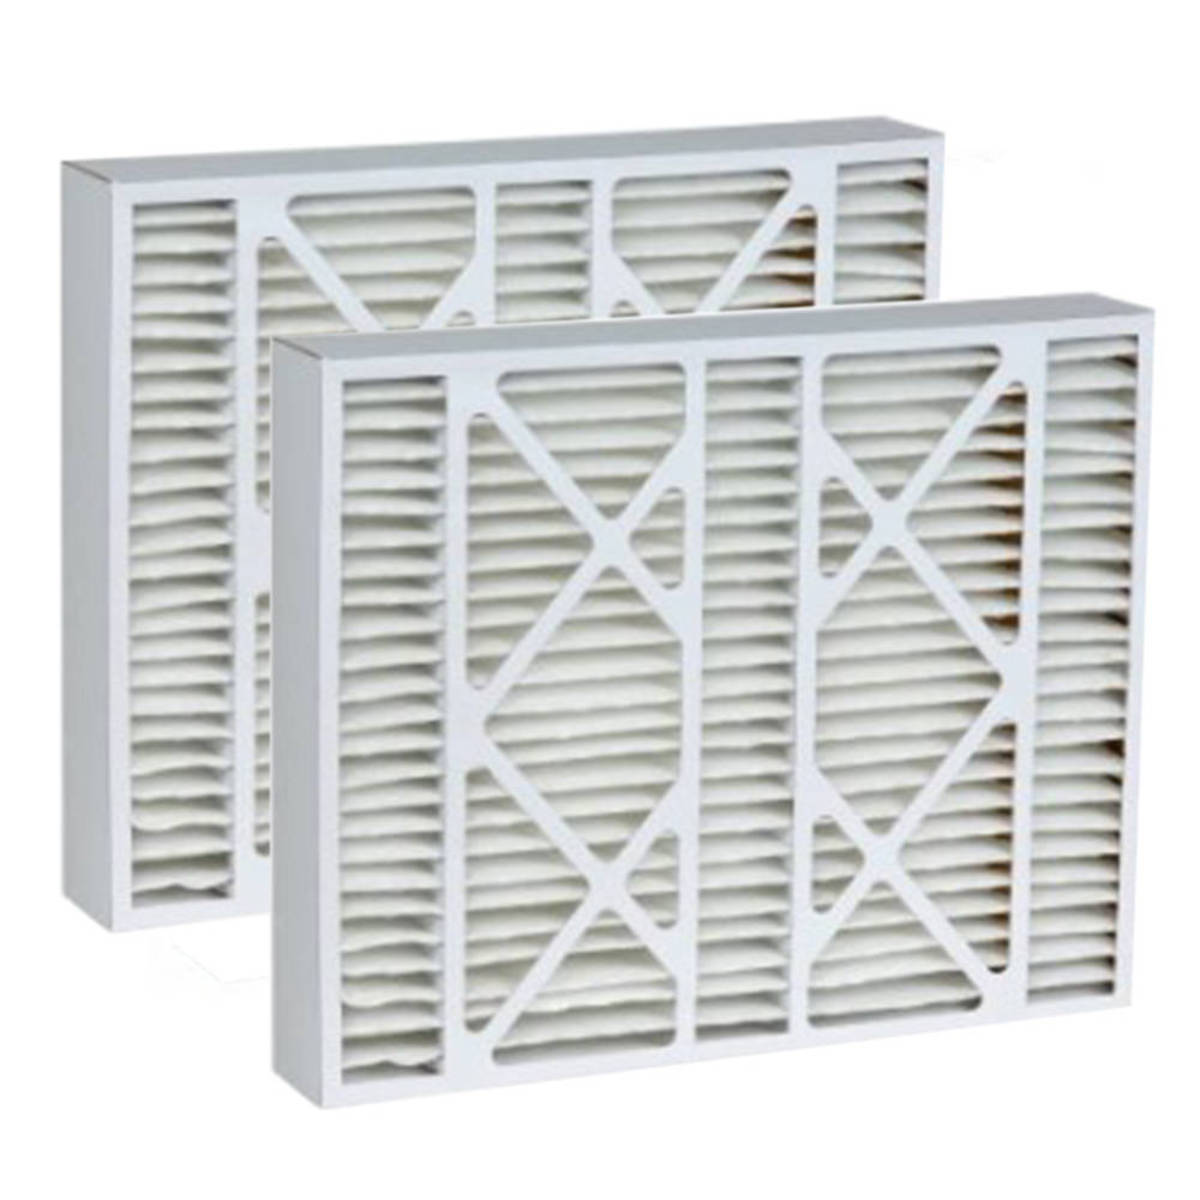 Tier1 20x21x5 Merv 11 Replacement for Electro-Air Air Filter 2 Pack